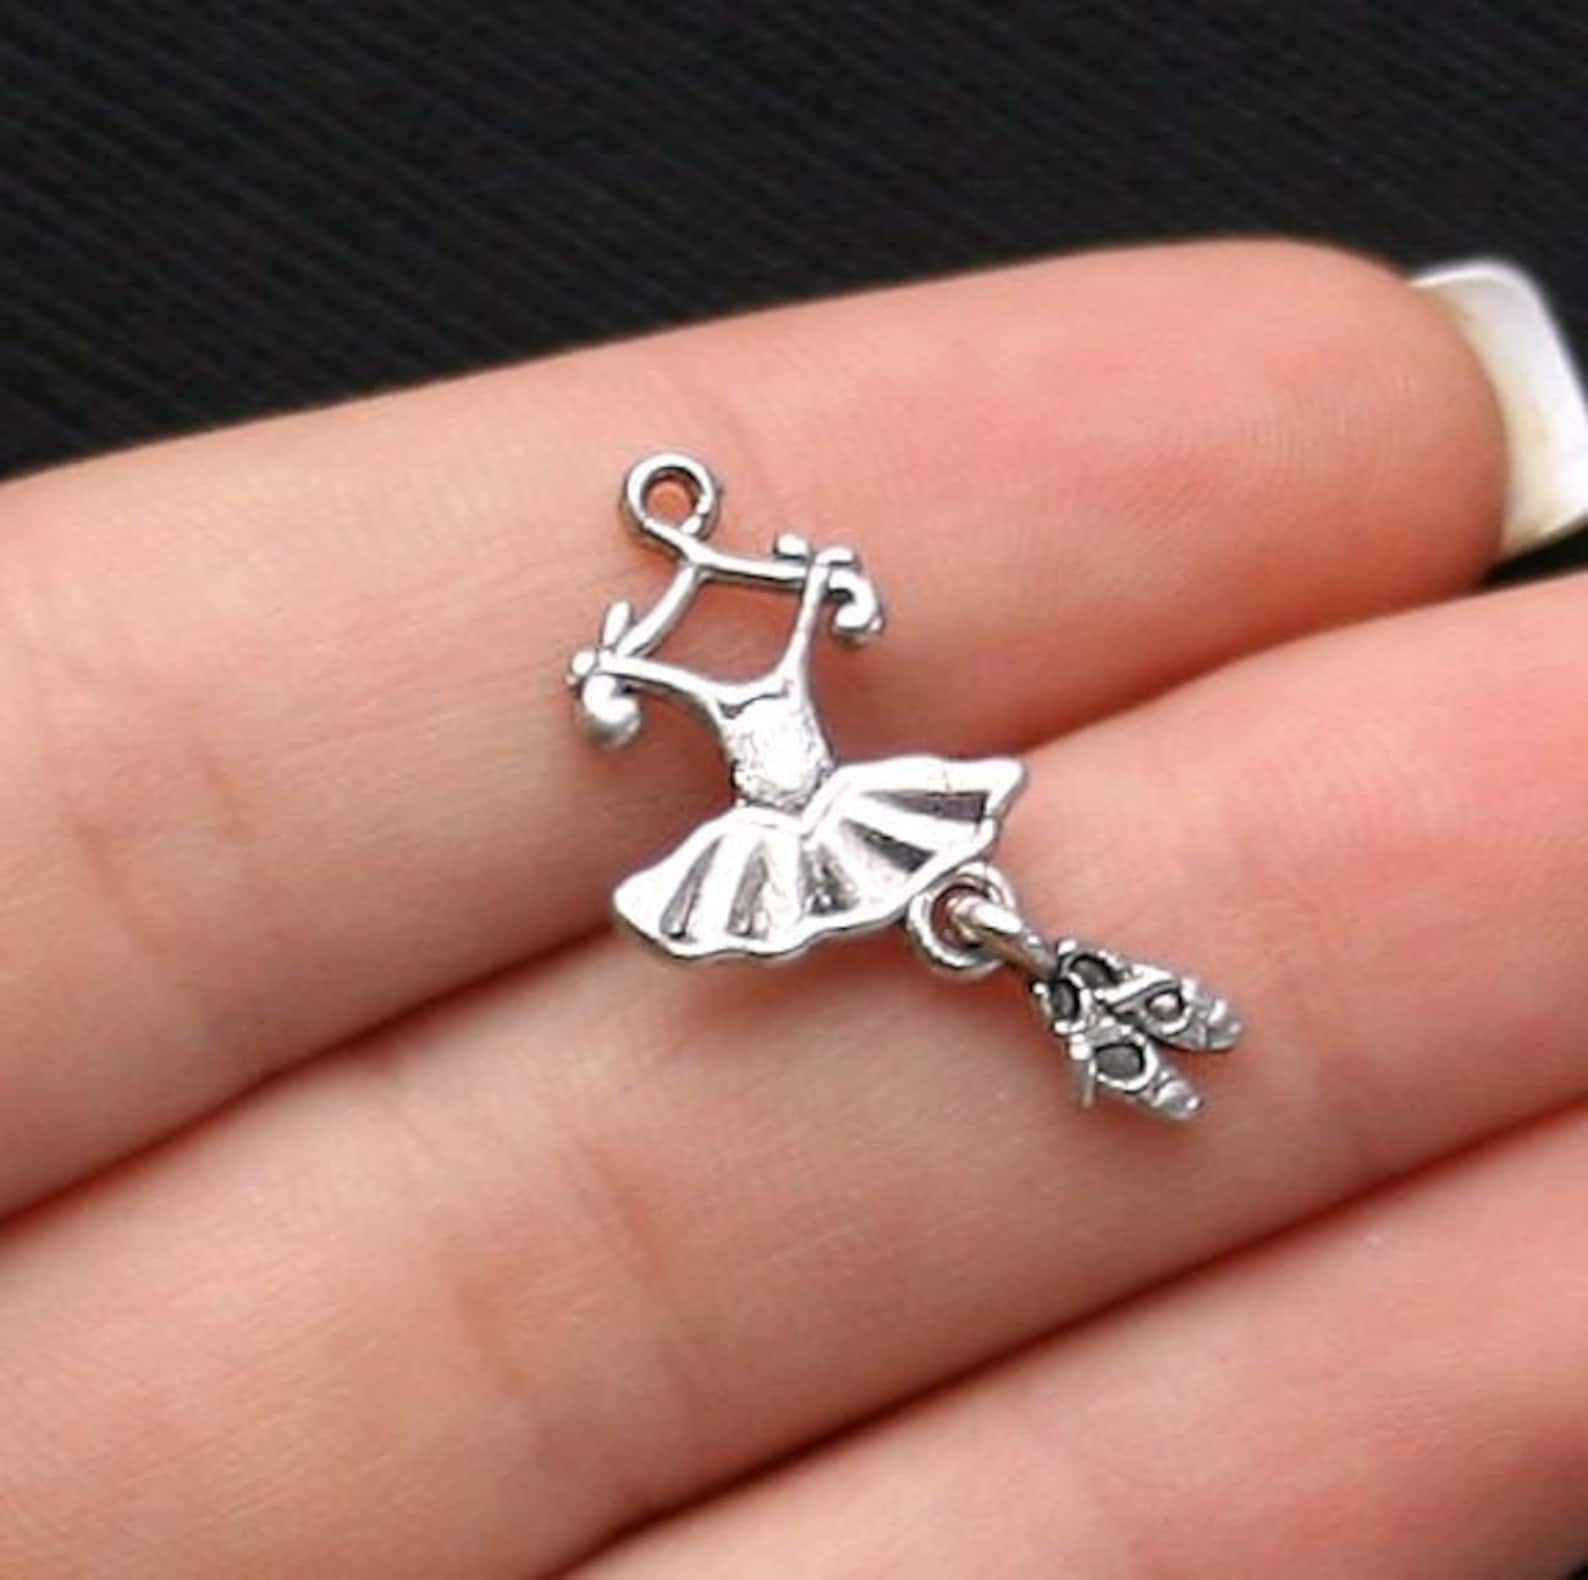 bulk 30 ballet charms antique silver tone 2 sided tutu with dangling toe shoes - sc1076